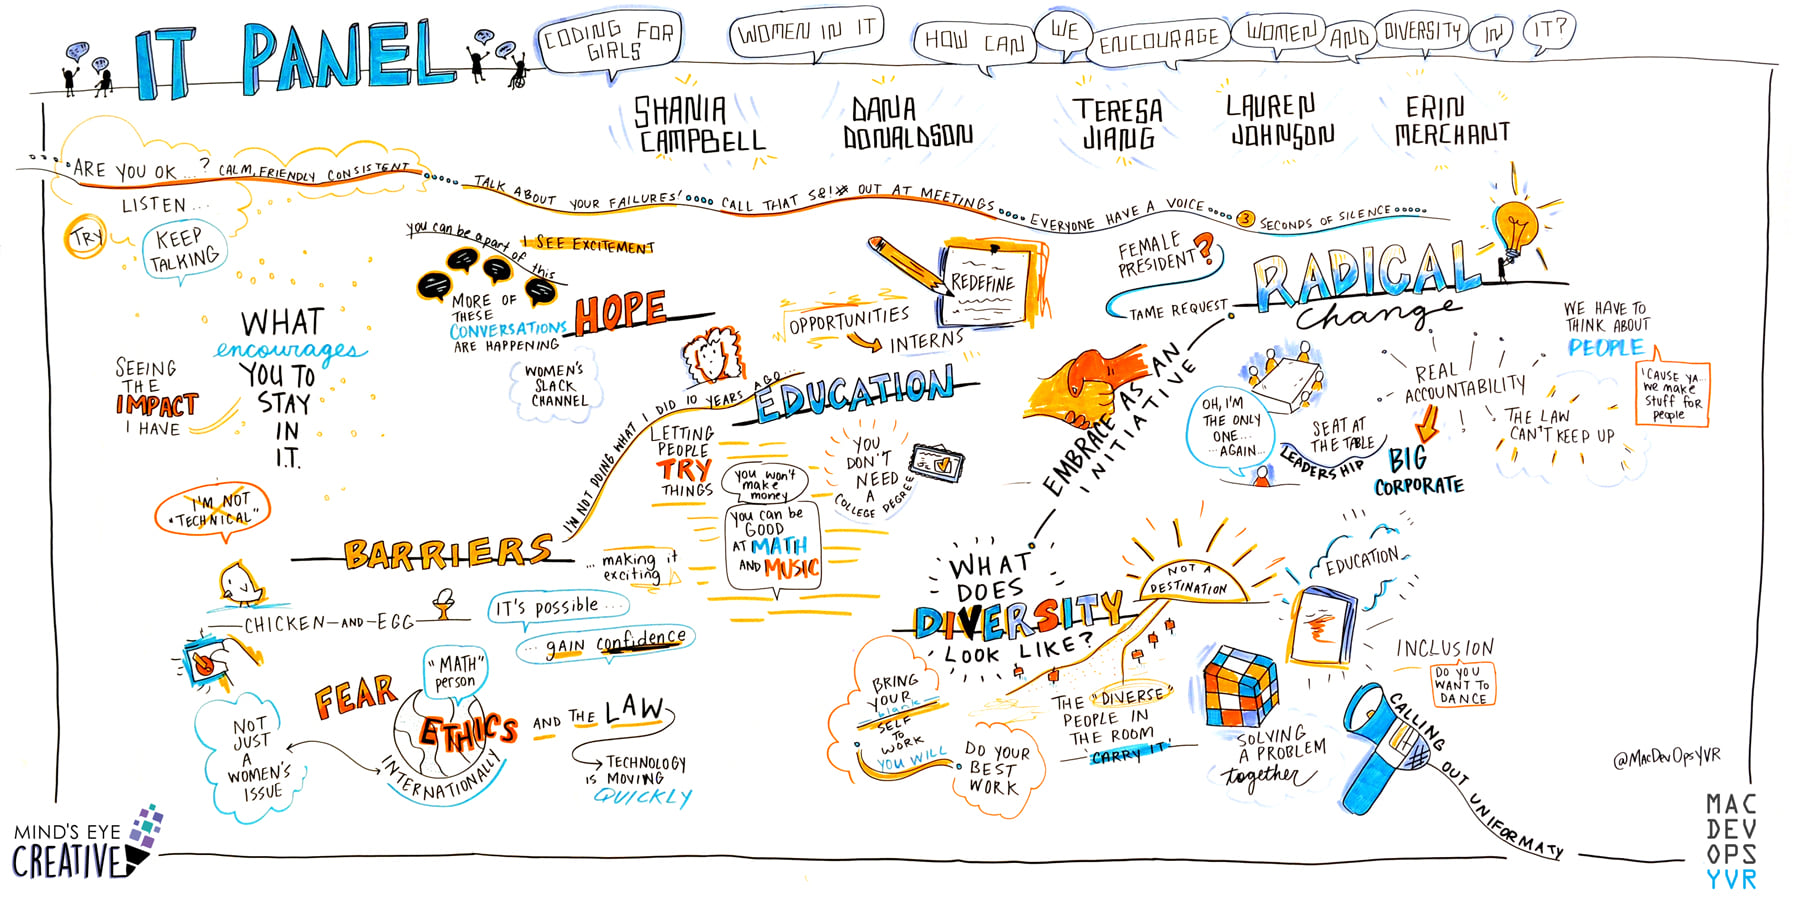 Sketch-note graphic from DevOps event in Vancouver